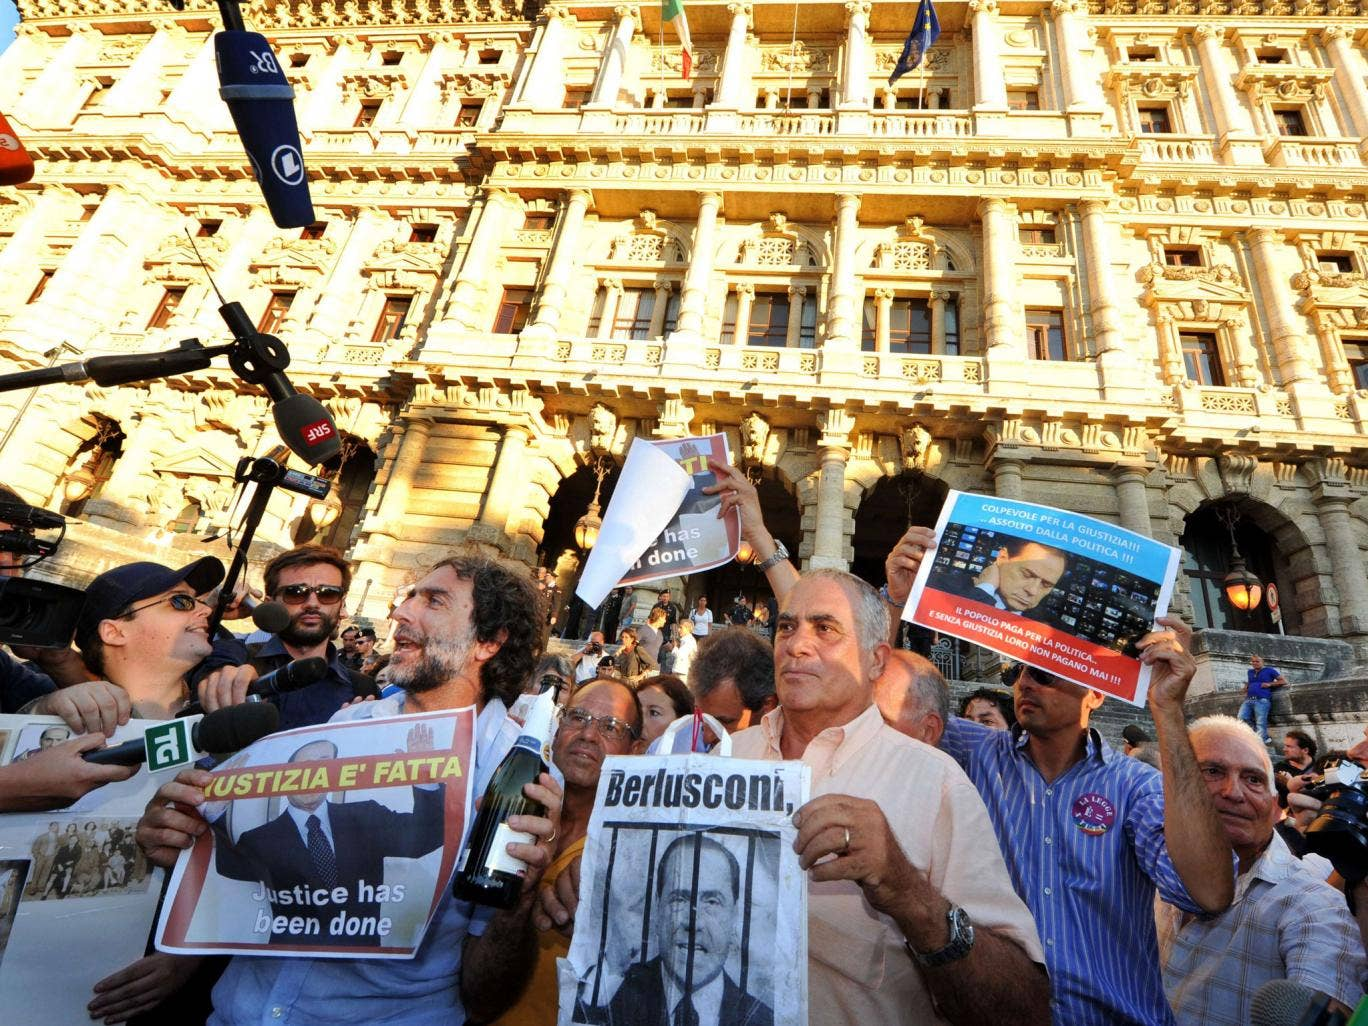 People hold signs as they celebrate the Italian Supreme Court's sentencing of Italian politician Silvio Berlusconi, in front of the Cassation building in Rome